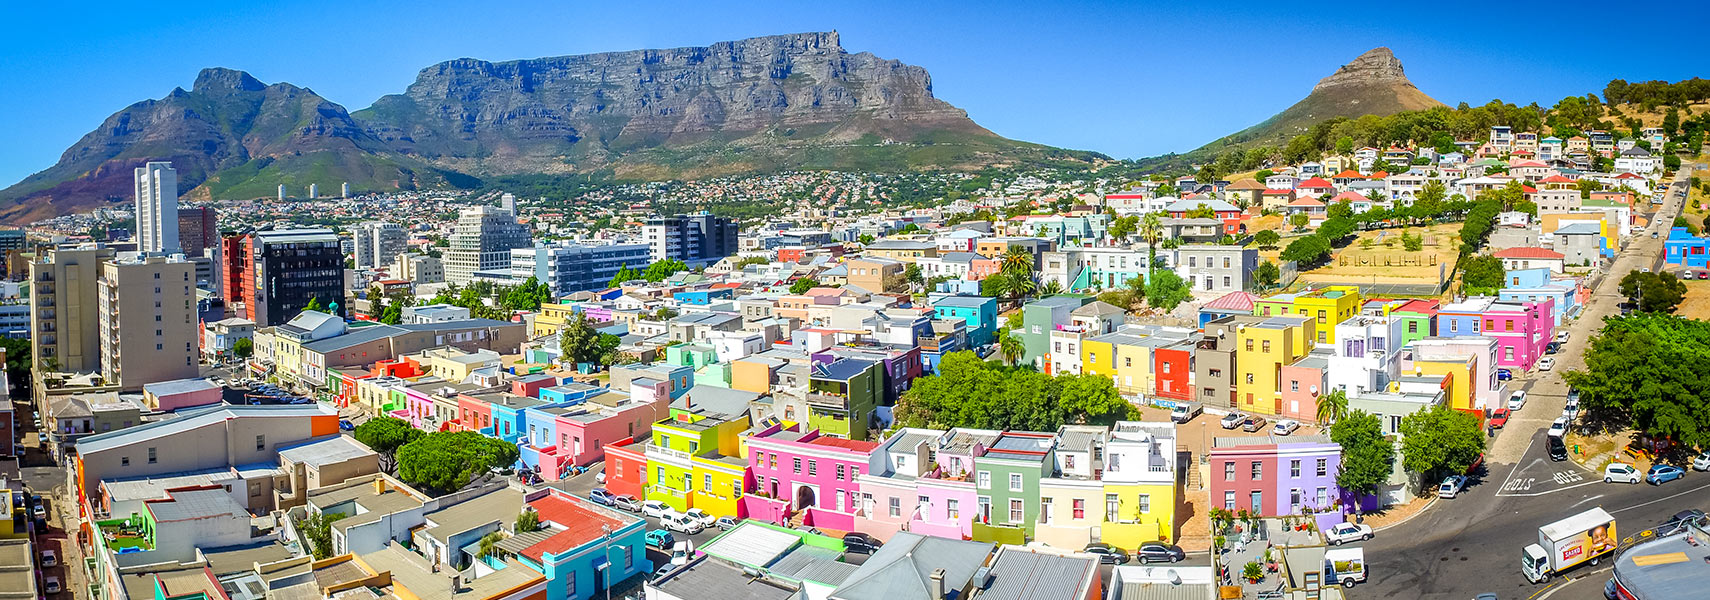 Capital Cities of Africa   Nations Online Project The Bo Kaap area of Cape Town  South Africa